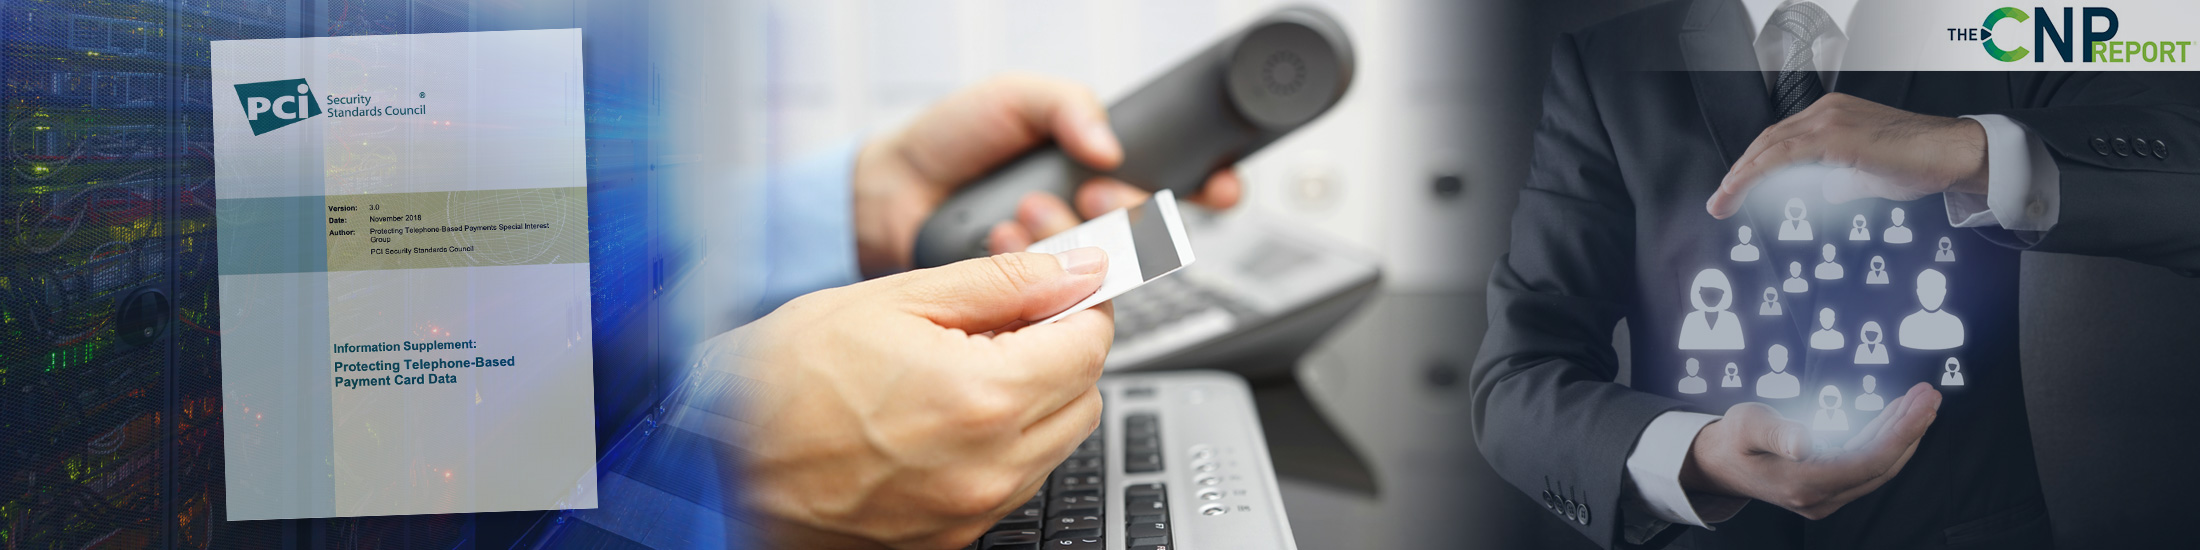 PCI-SSC Publishes Updated Guidance for Telephone-Based Card Payments